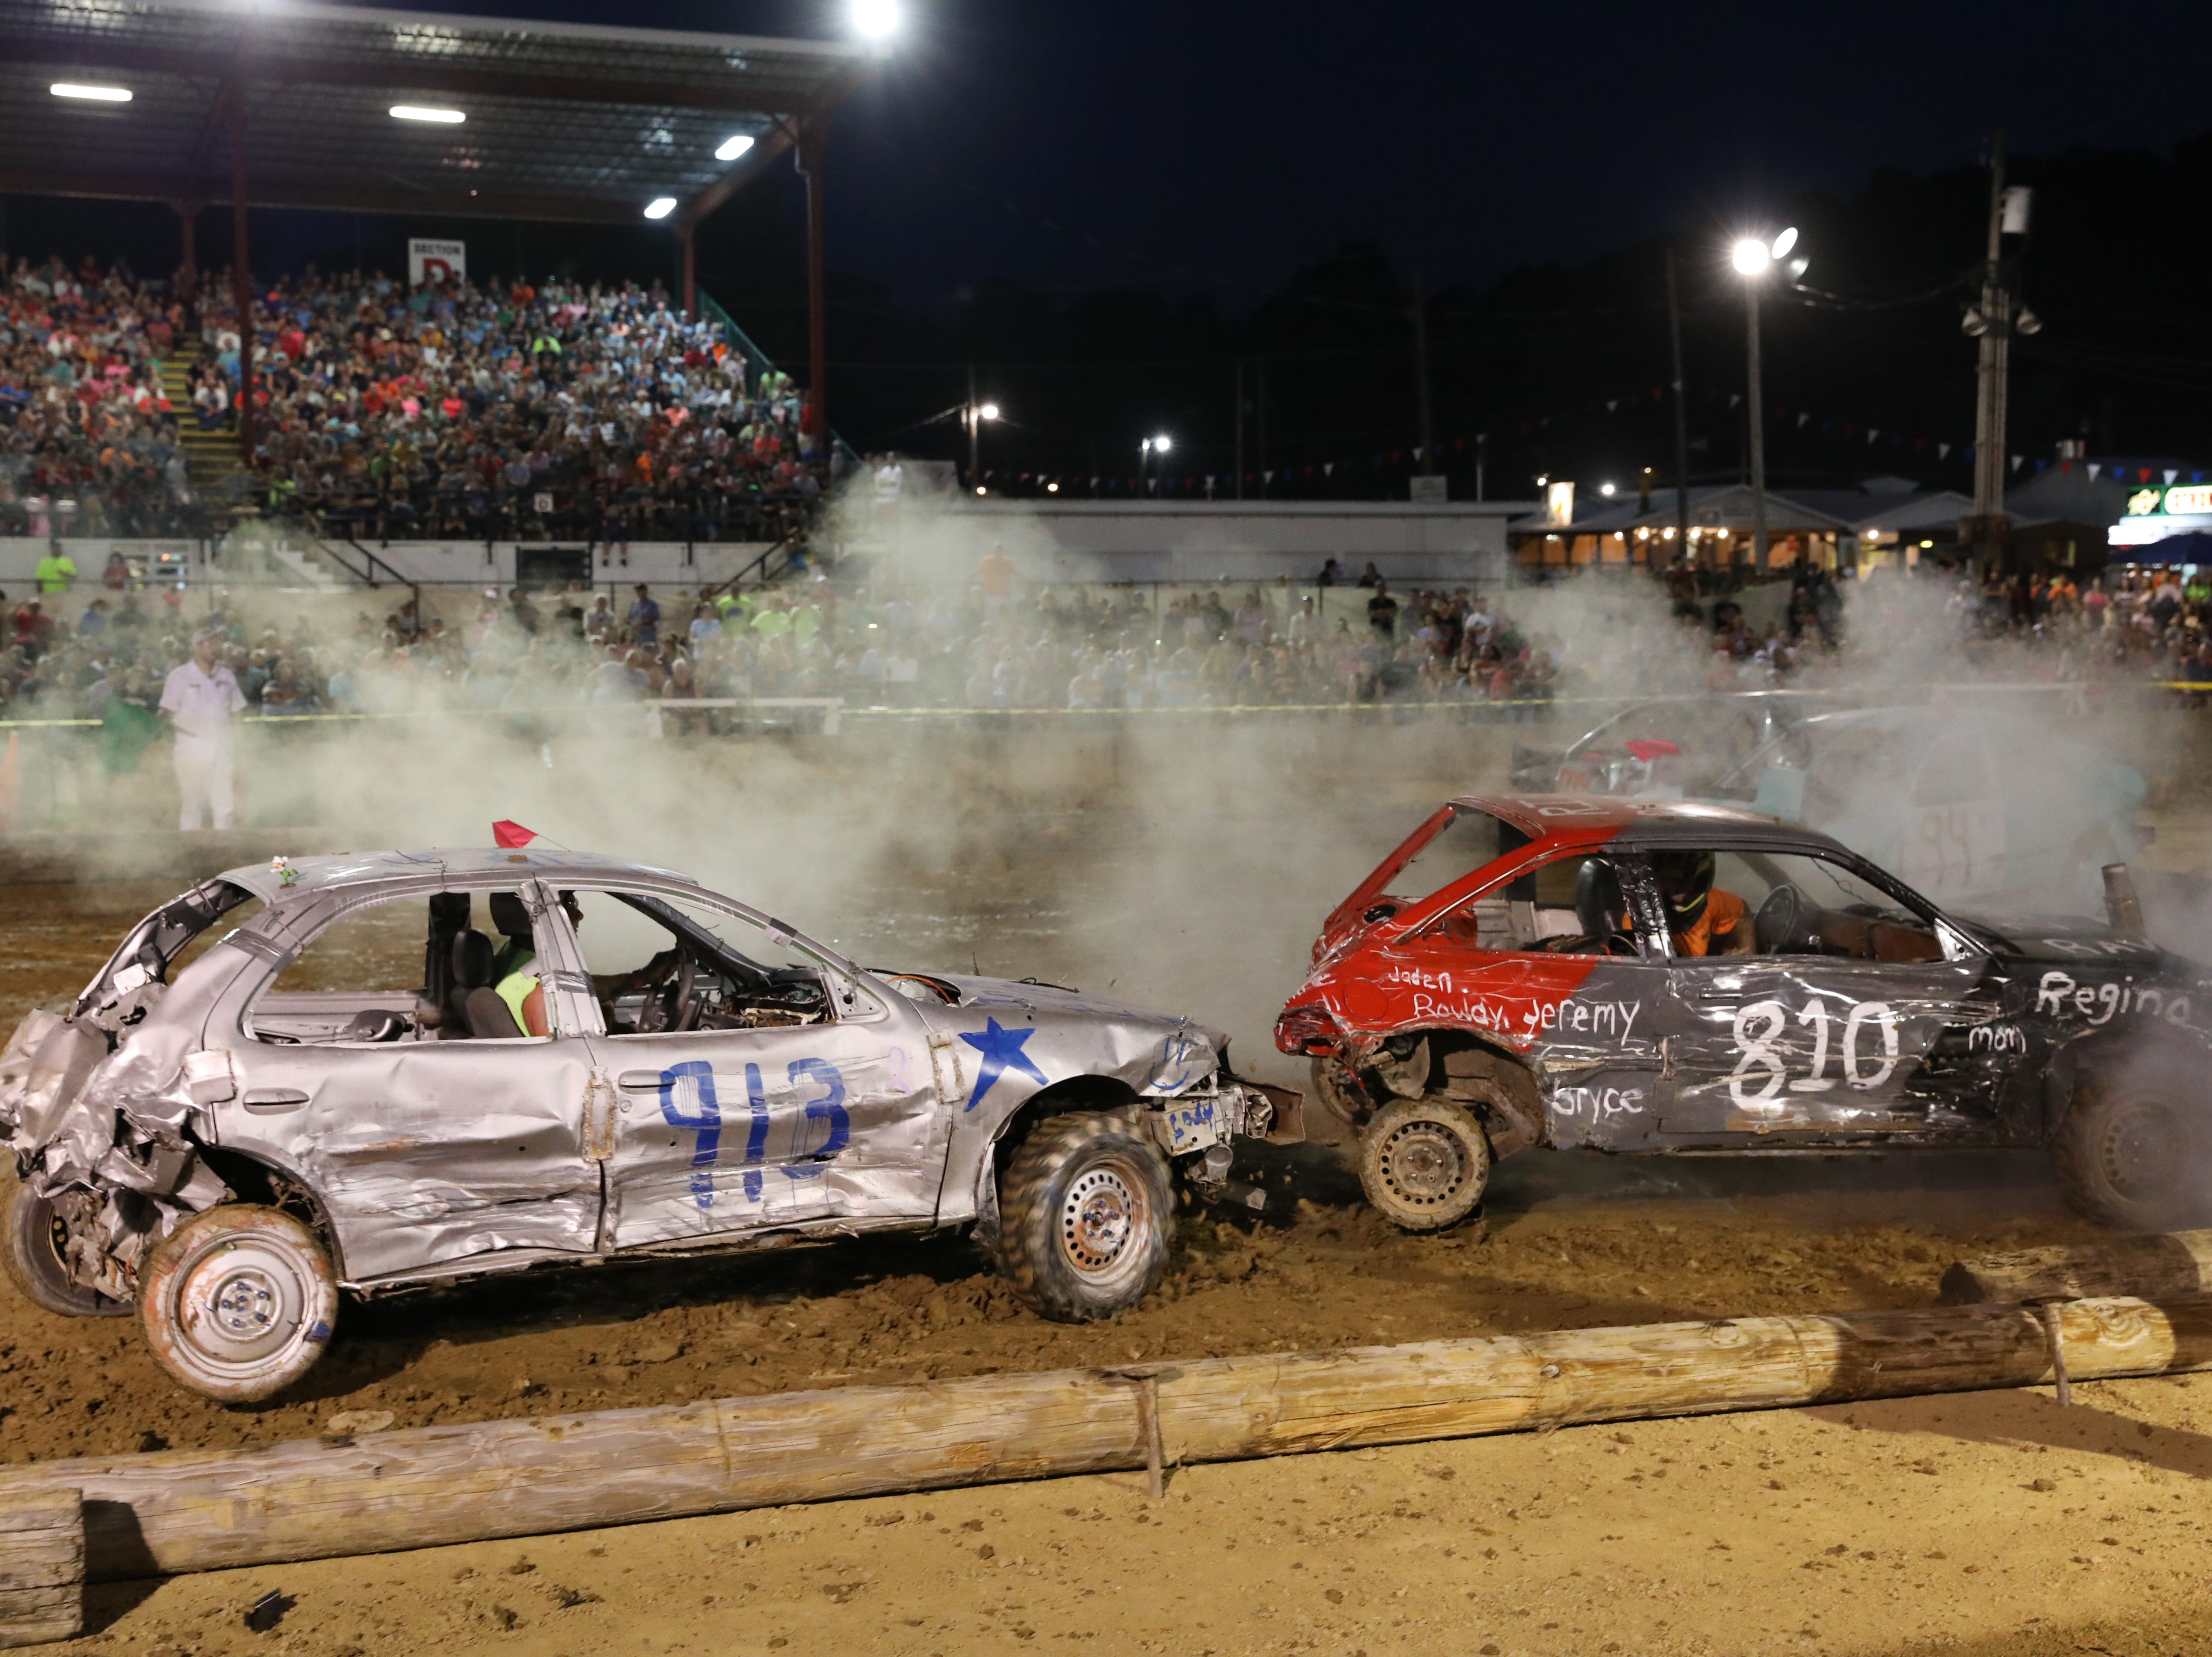 Robert Anderson's 810 car and Brian Paul's 913 battle to the end of the third heat during the Sarge and Sons Demolition Derby at the Muskingum County Fair on Tuesday.